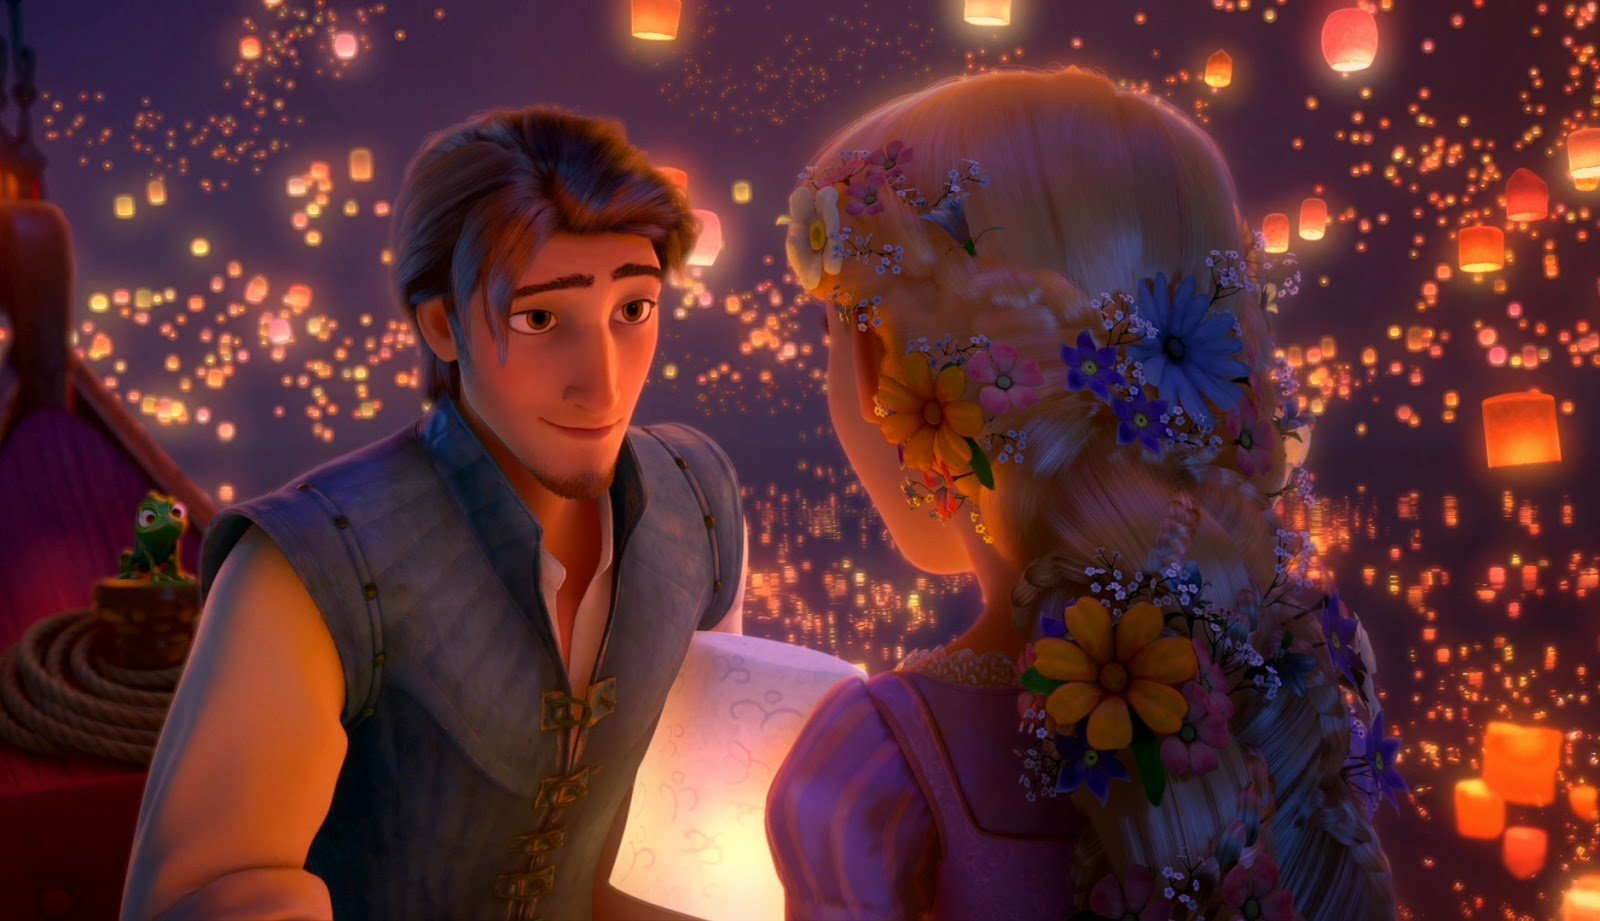 Rapunzel and Flynn love Wallpaper HD Wallpapers Disney Movies 1600x921